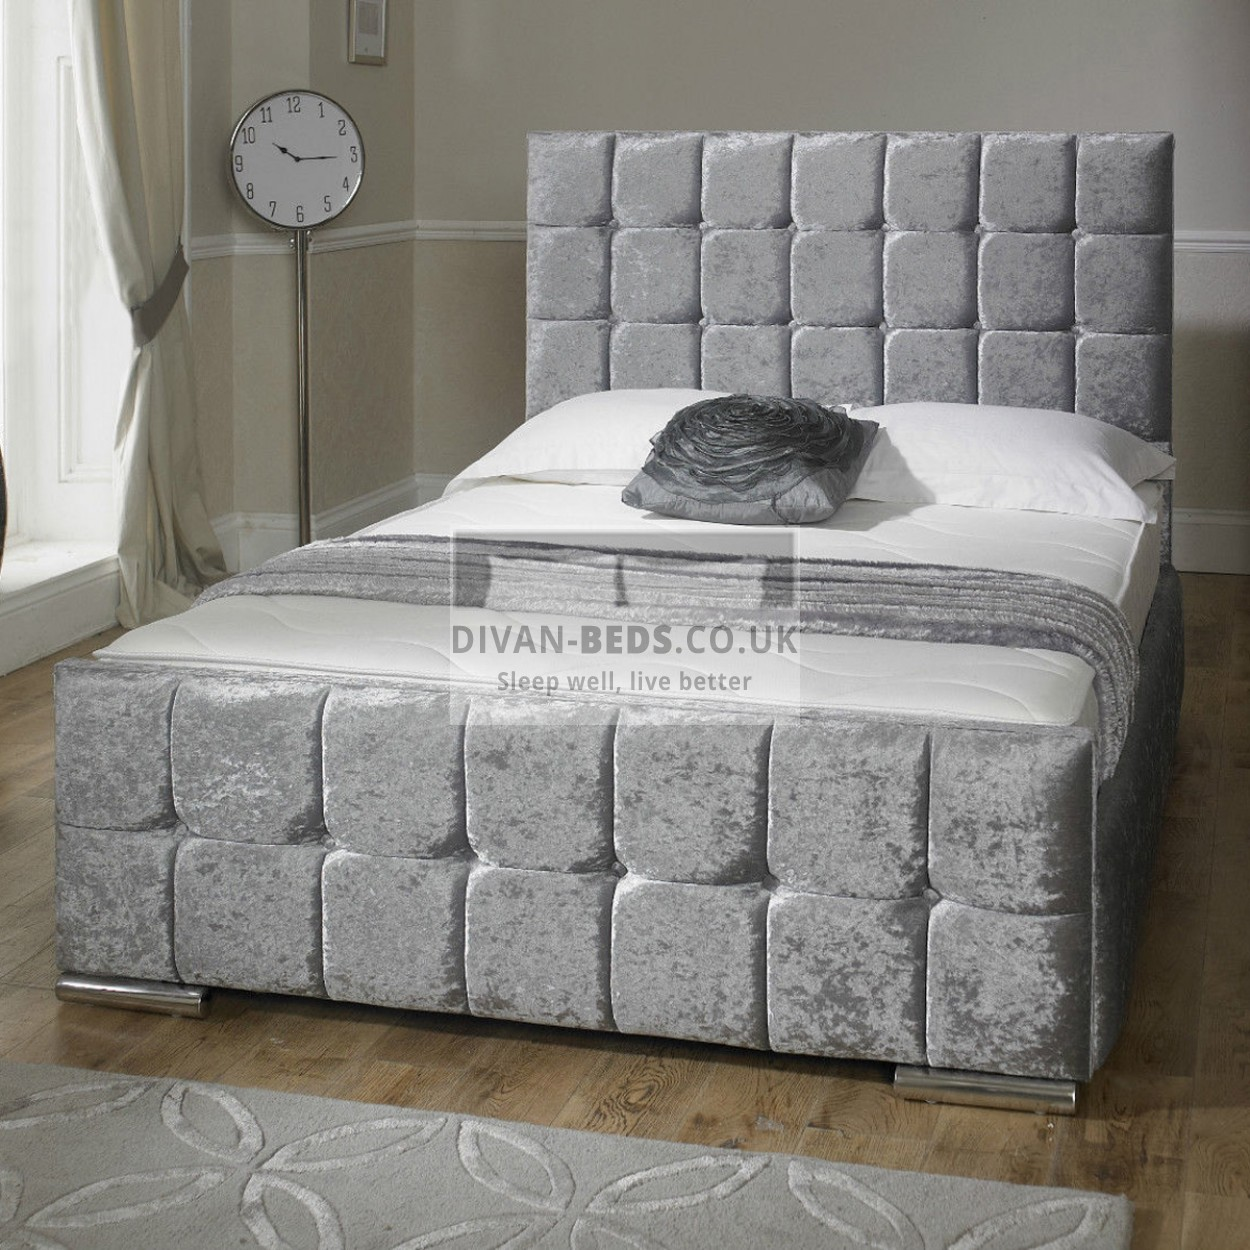 Renata cube crushed velvet fabric upholstered bed frame guaranteed cheapest free fast delivery Bed divan